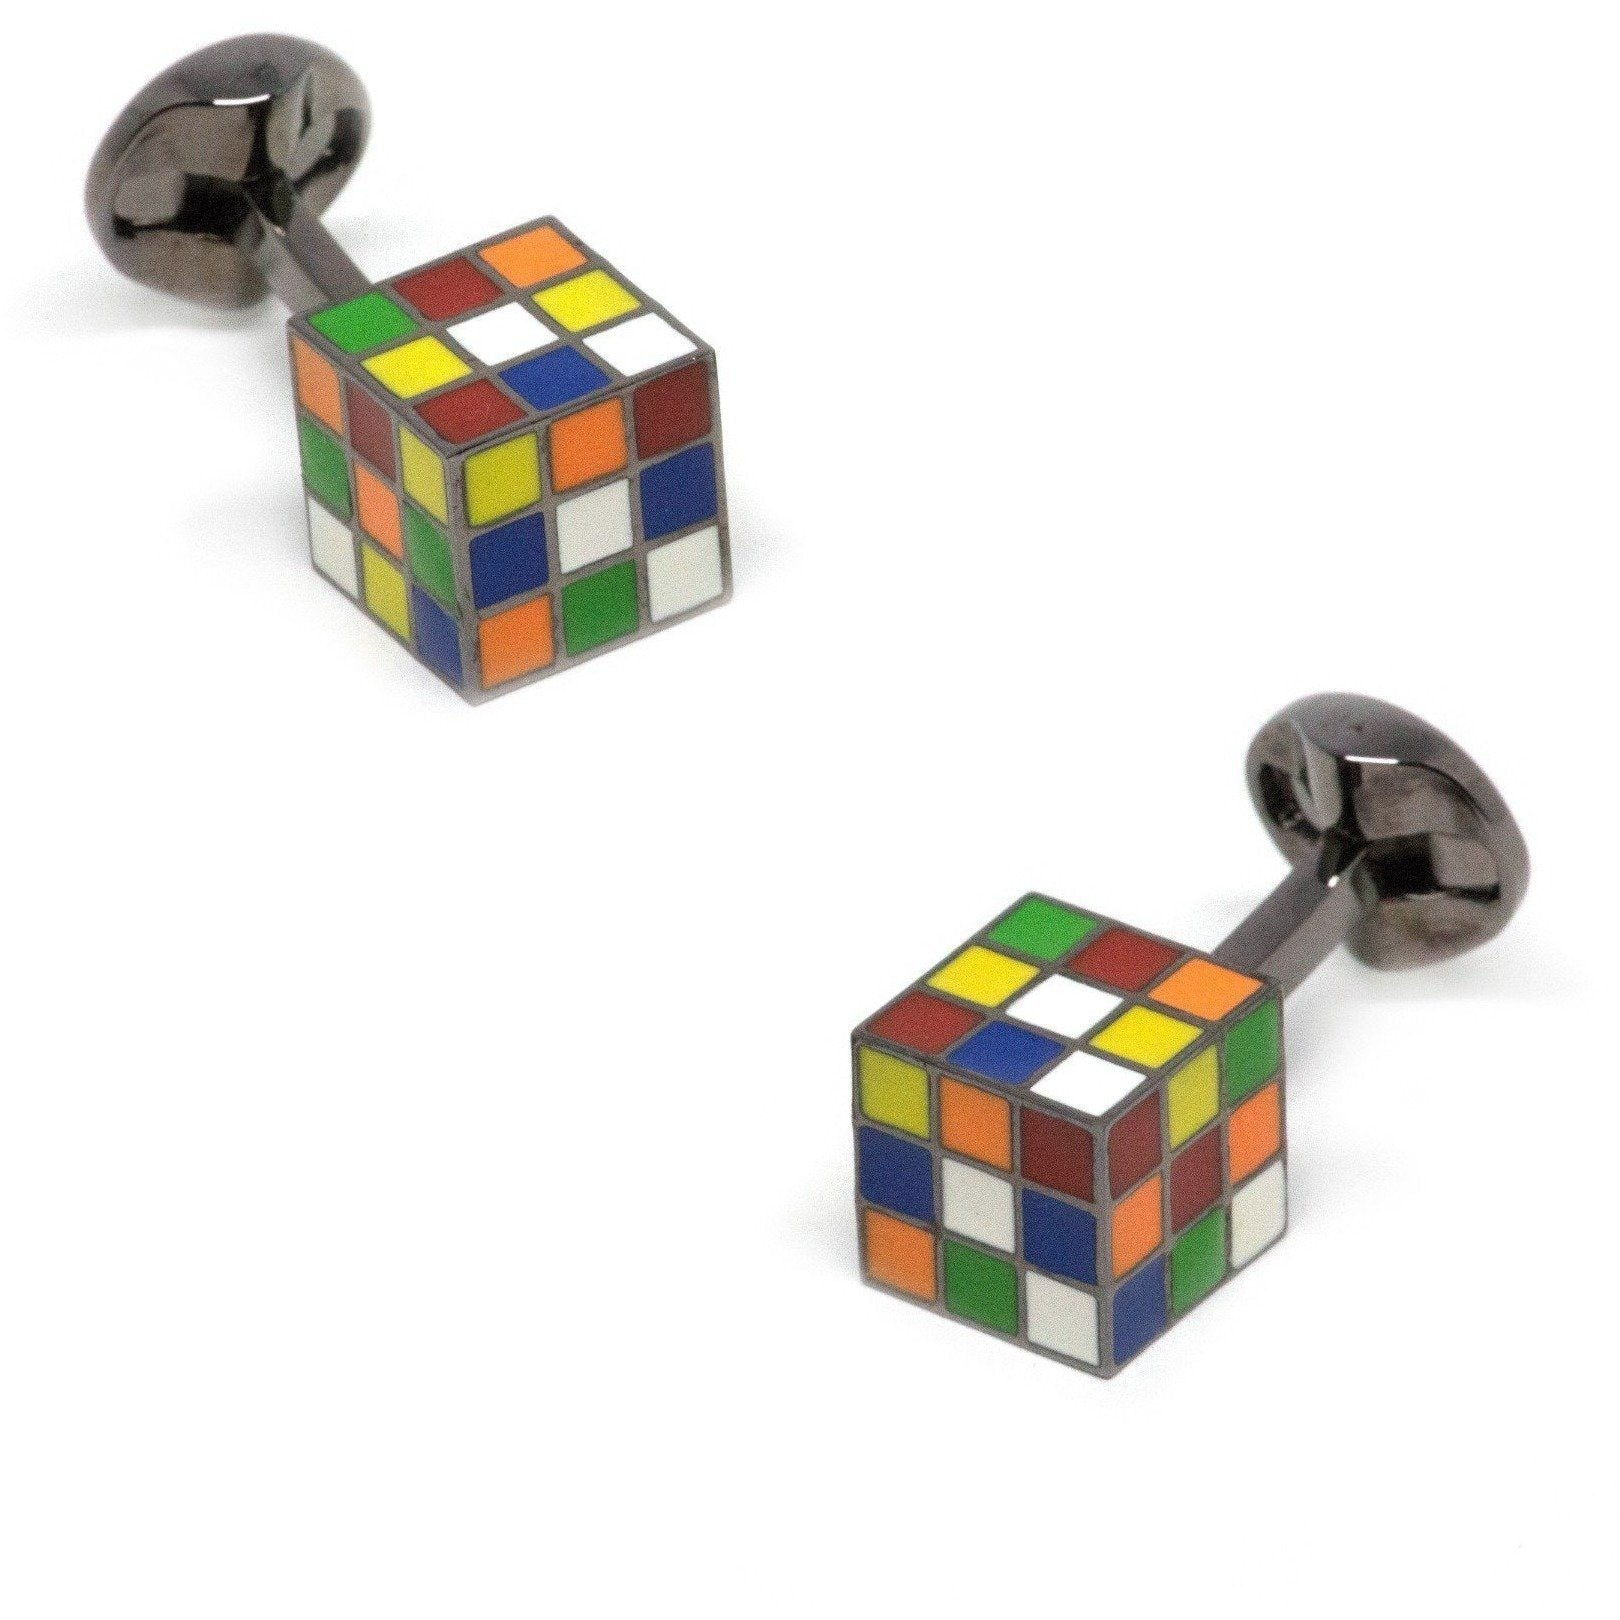 Rubiks Cube Cufflinks, Novelty Cufflinks, Cuffed.com.au, CL8725, $29.00